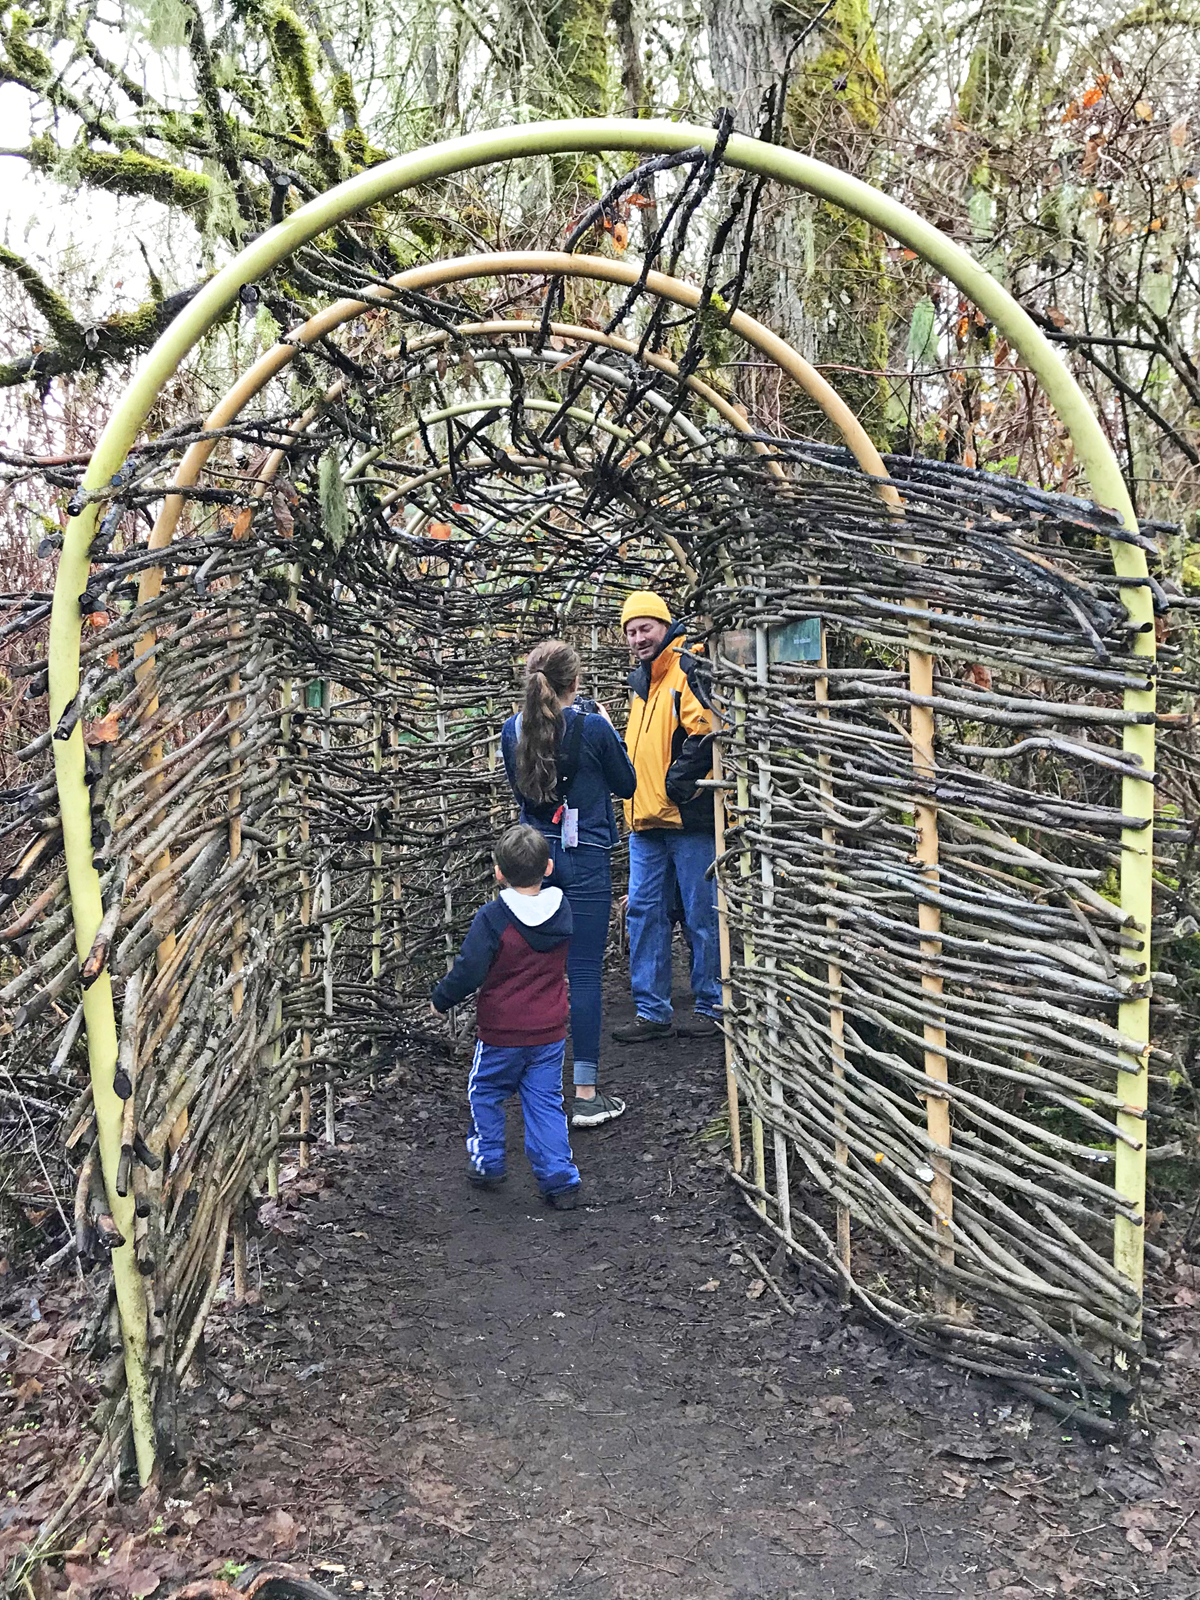 Bird blind exhibit at Mt Pisgah near Eugene